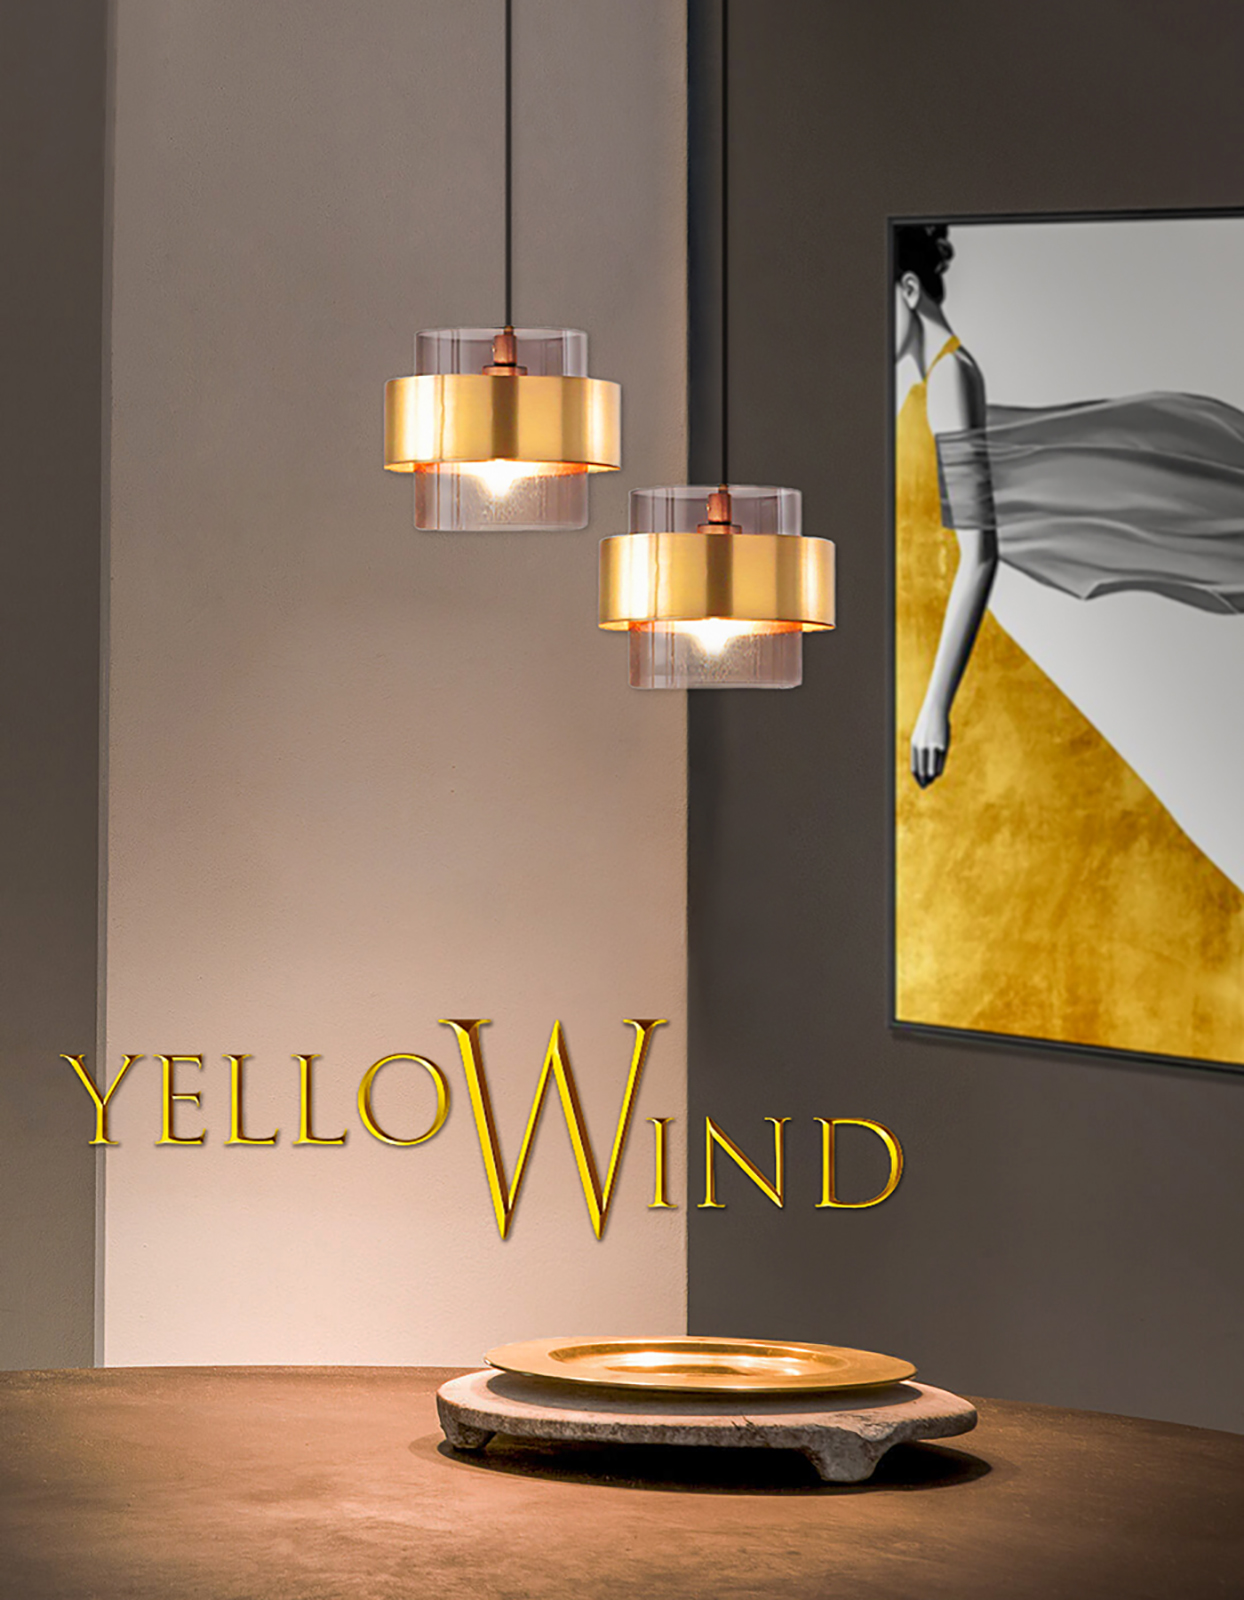 (Tiếng Việt) Yellow Wind